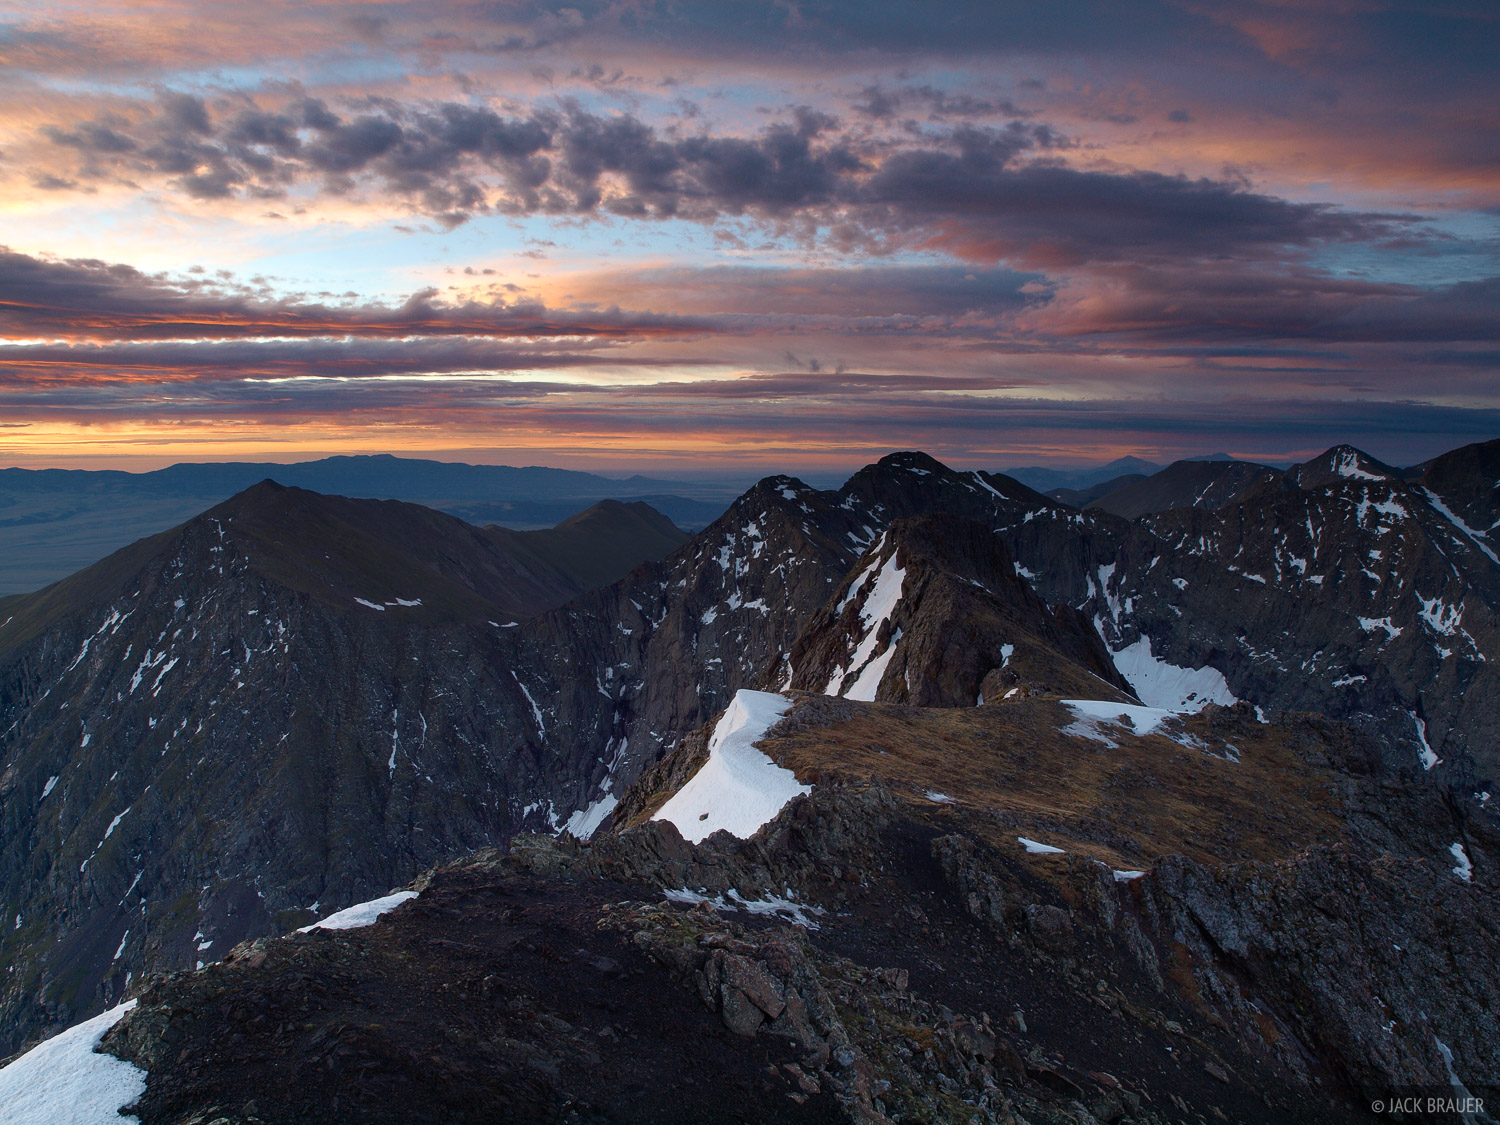 Awesome sunrise as seen from the summit of Broken Hand Peak, 13,573 feet - June.